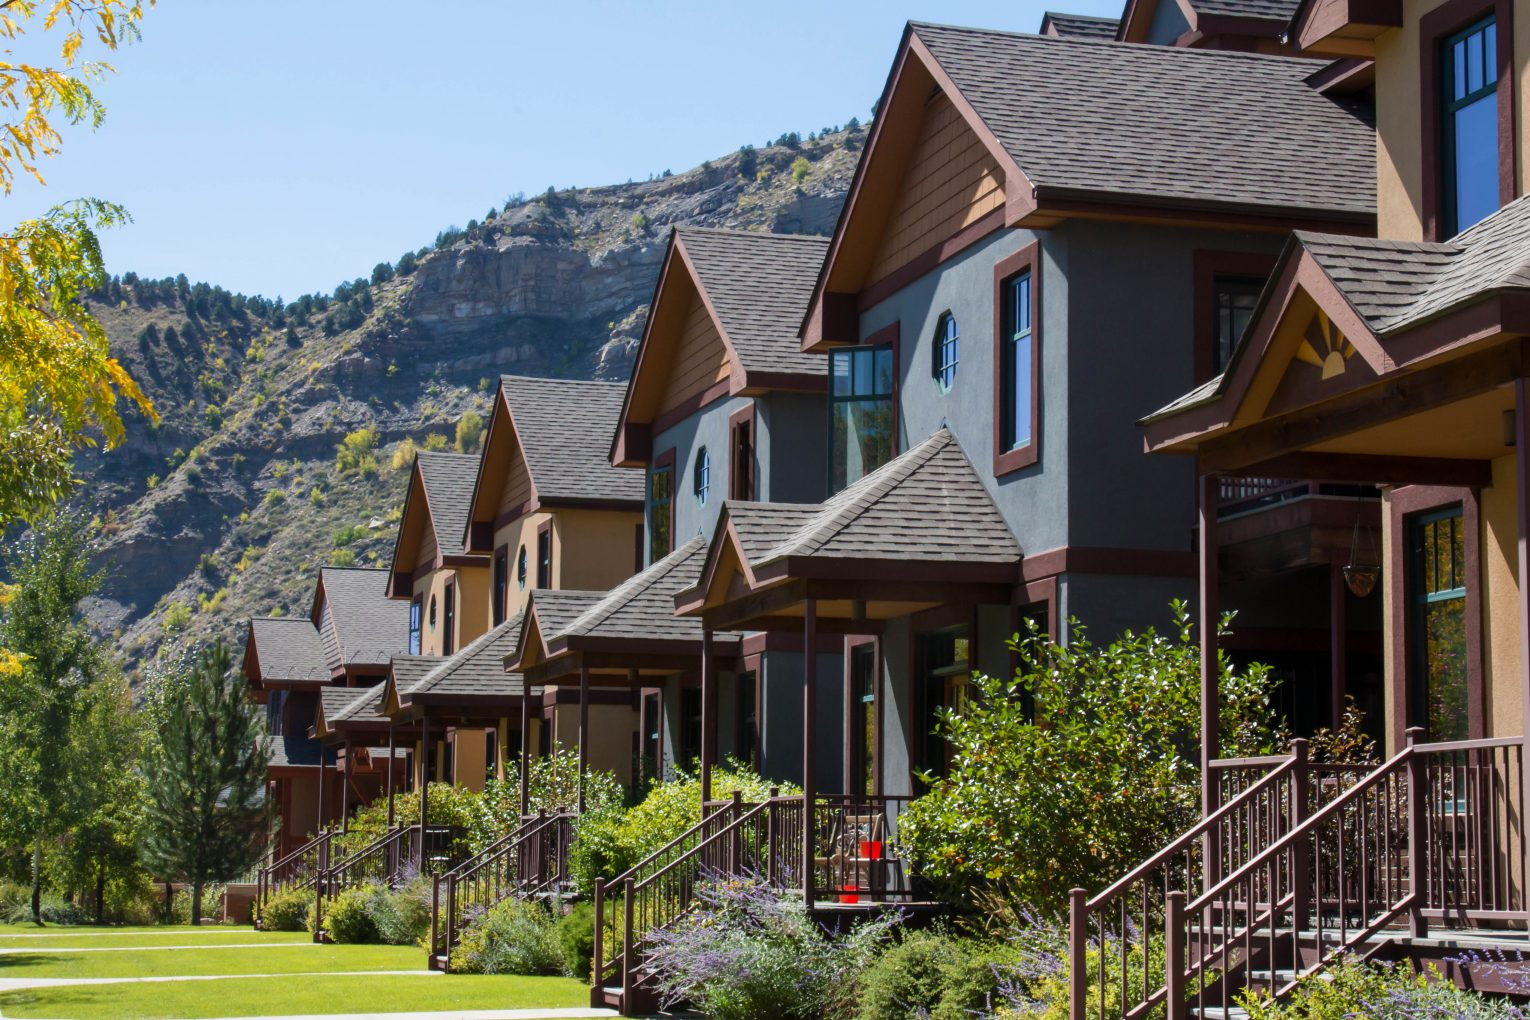 Foreign Investment in Alternative Assets in Colorado